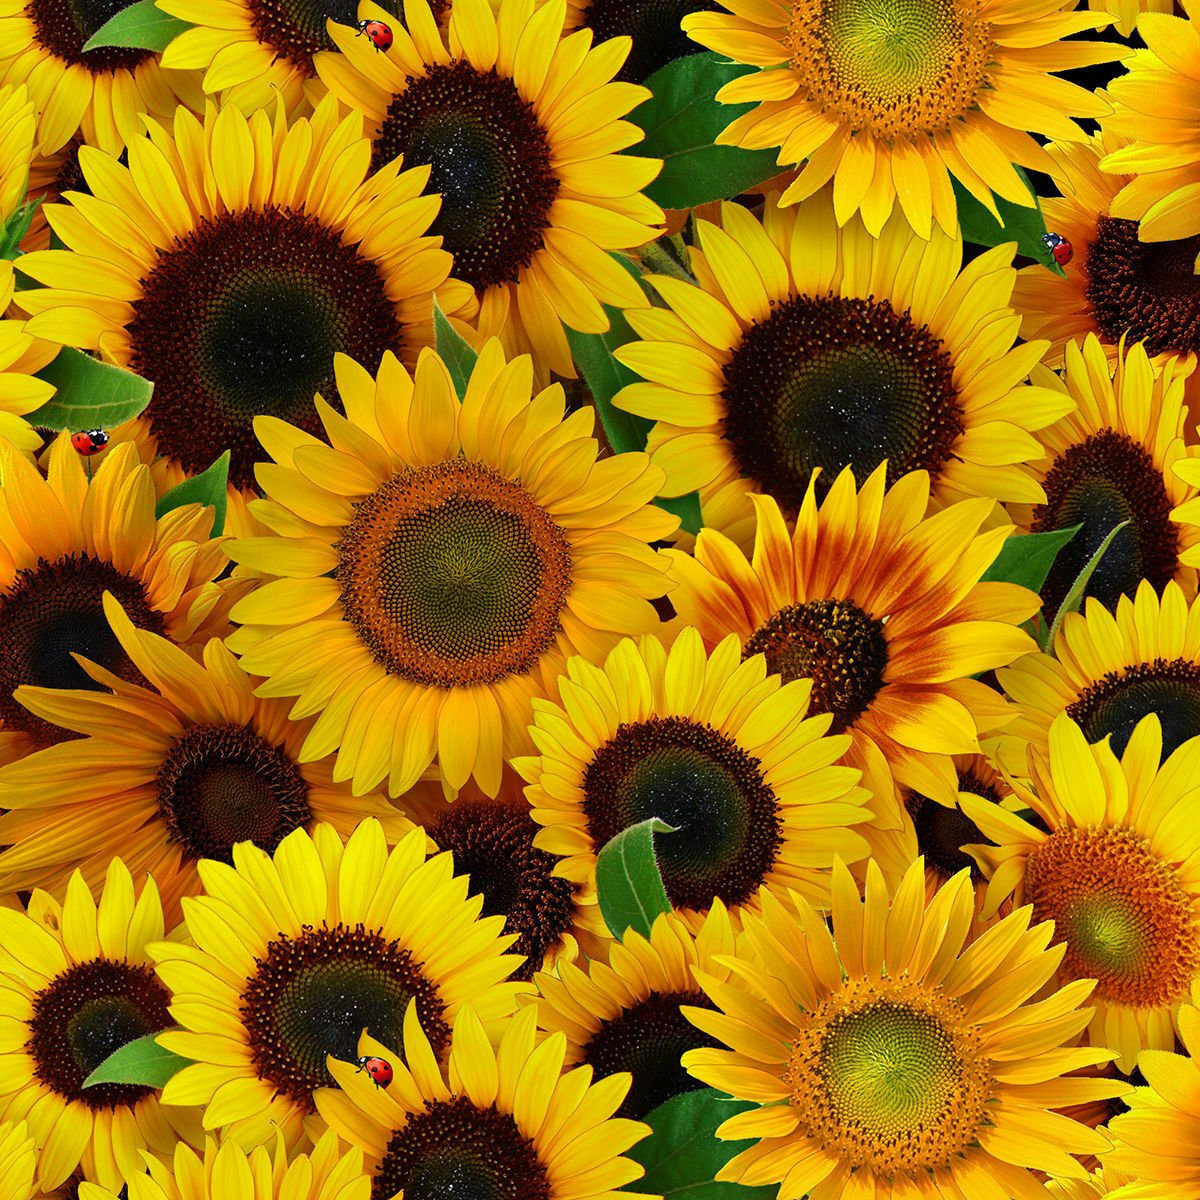 ES Sunflowers overall